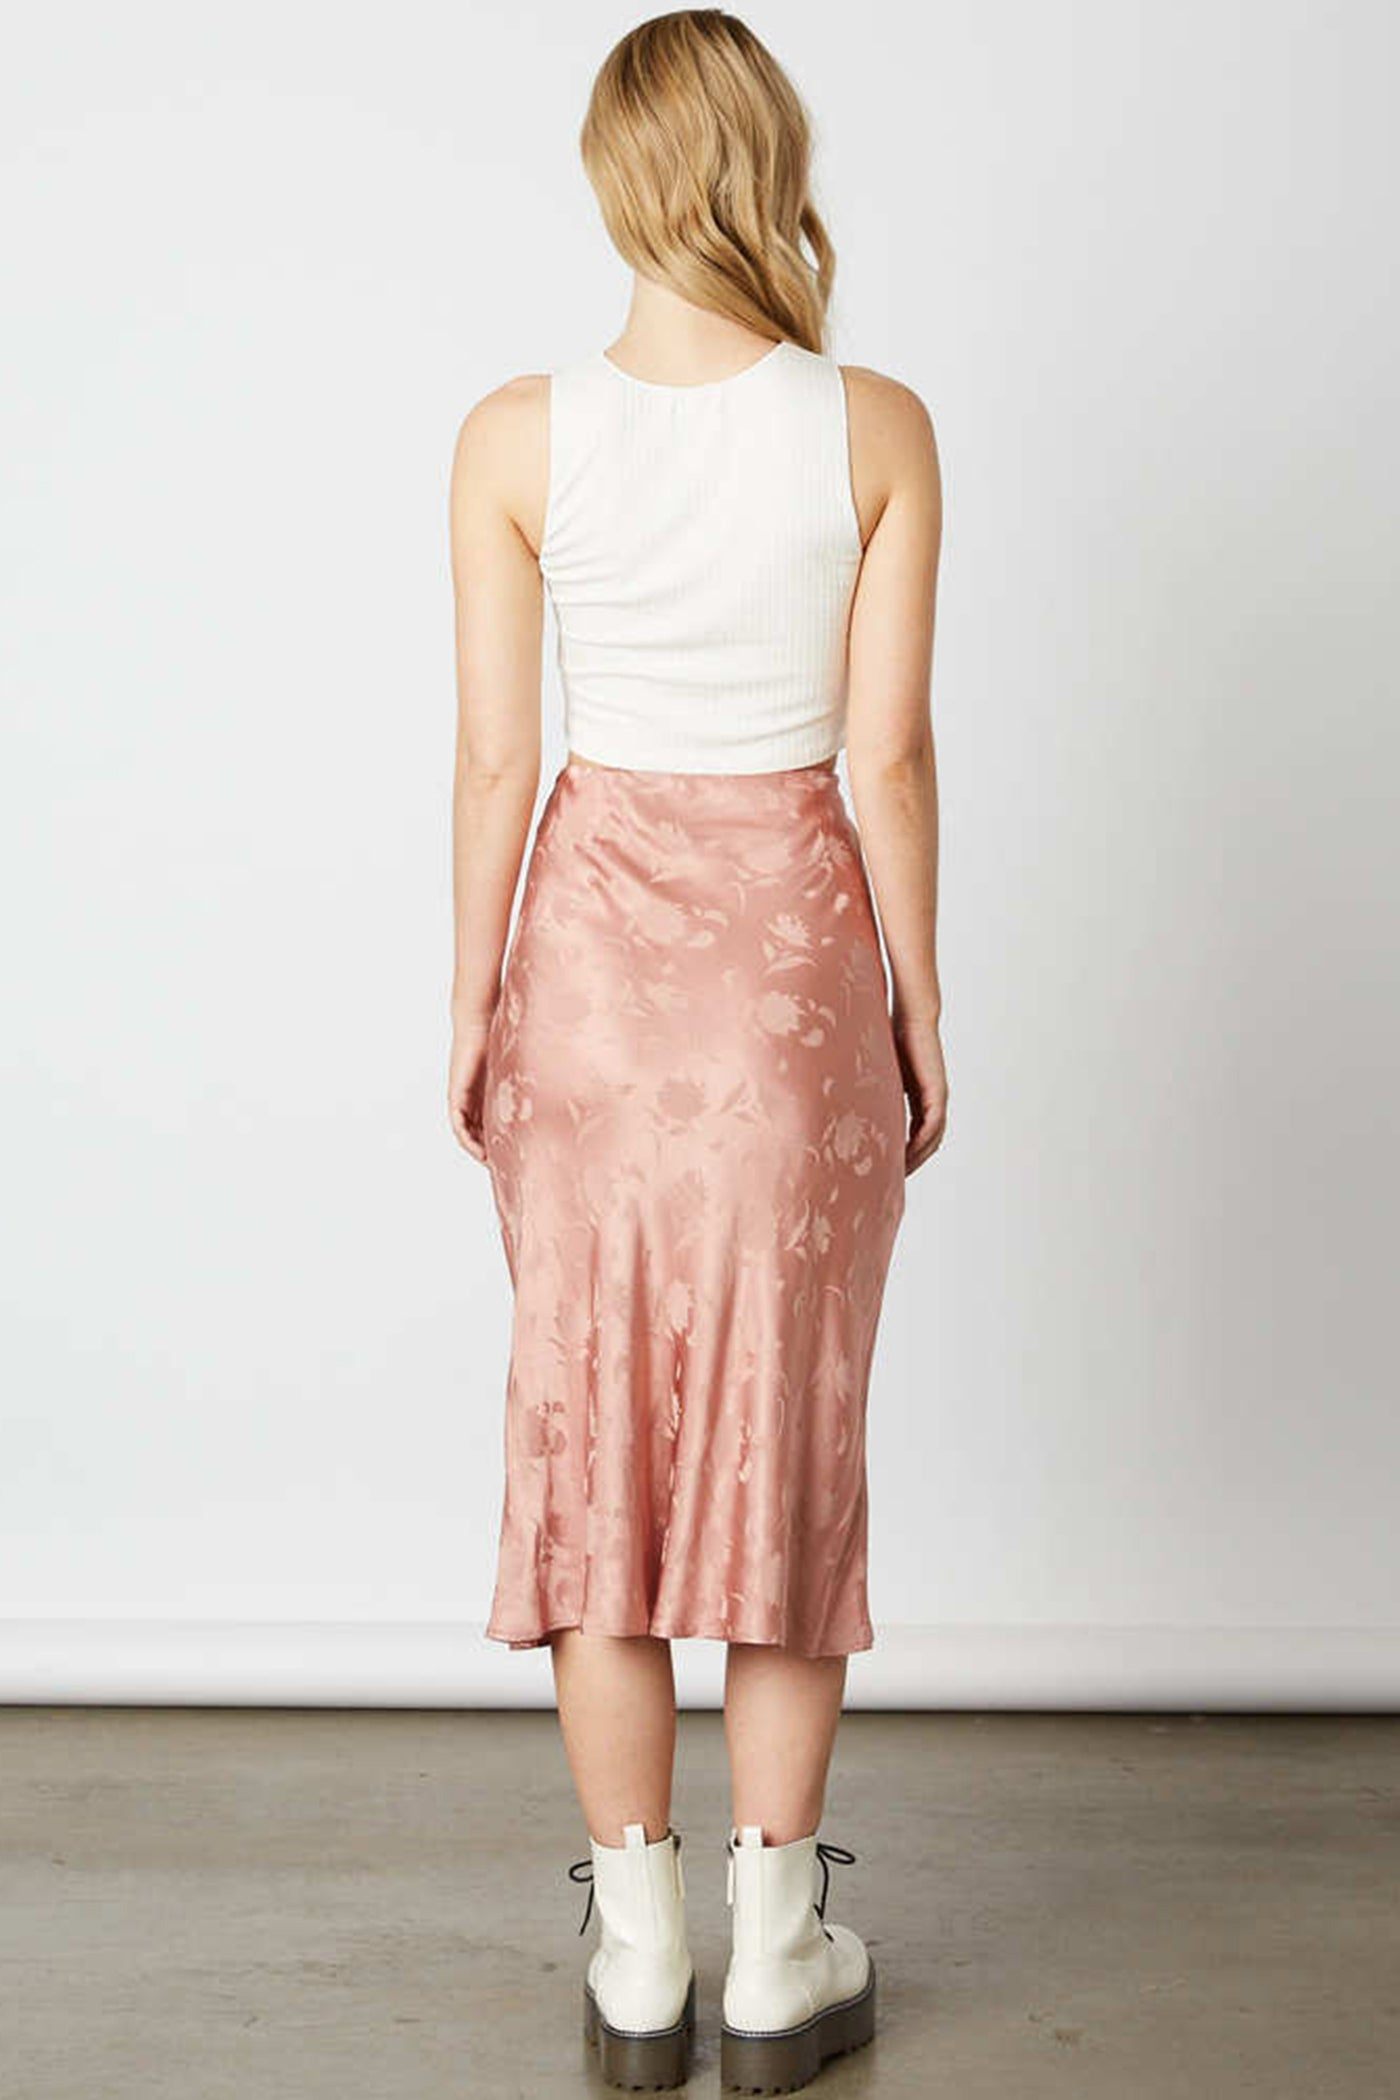 Striking Looks Skirt